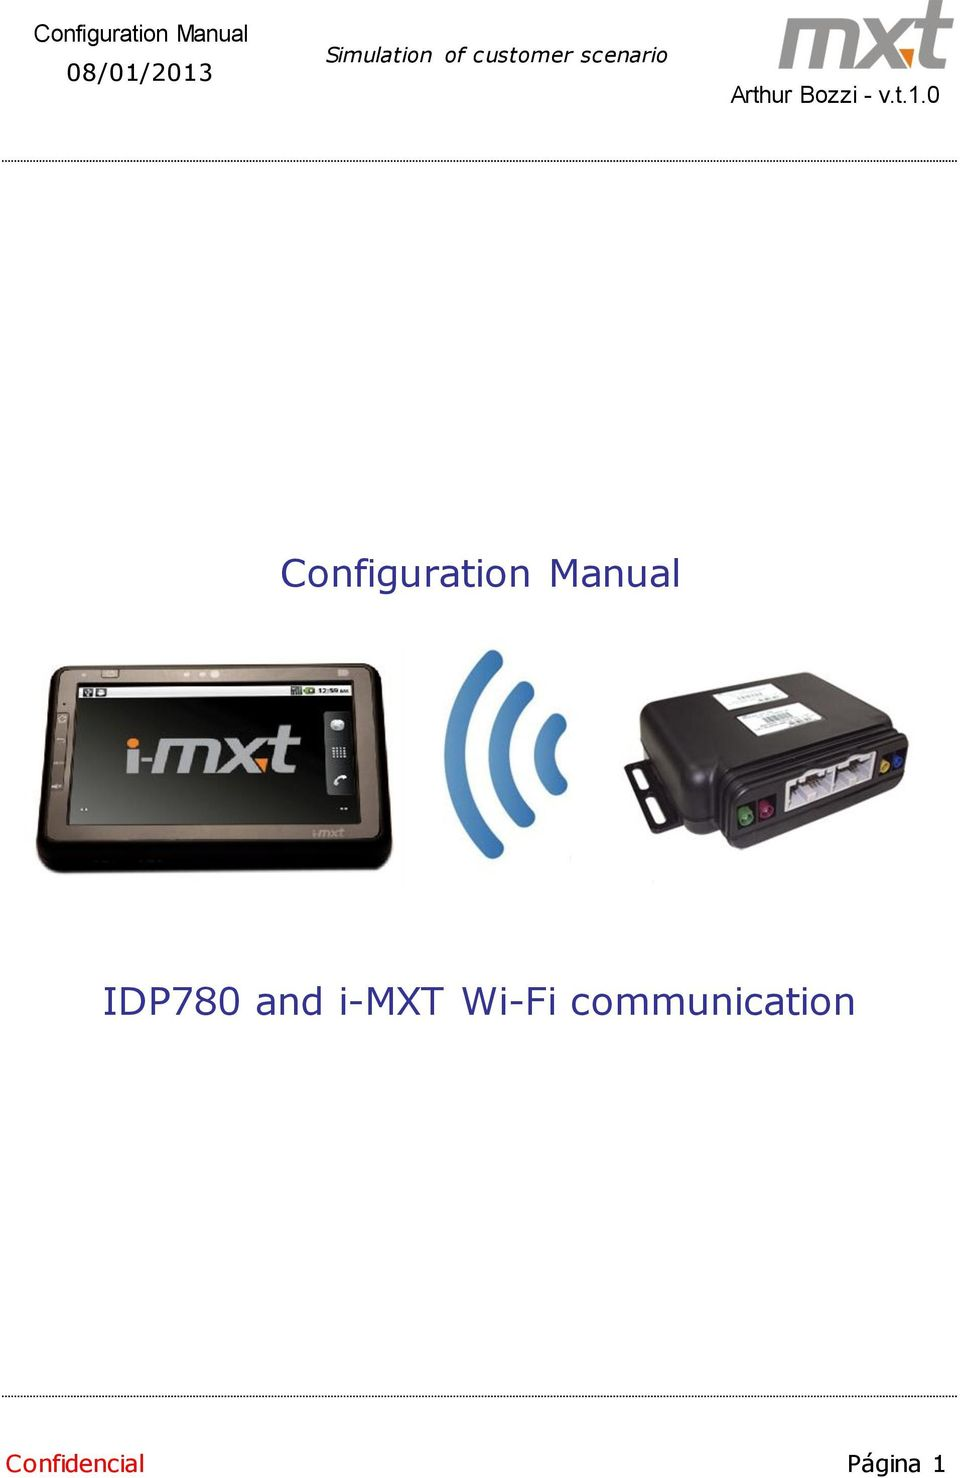 2 About this manual This document aims to guide the configuration of IDP780  connecting to i-mxt for simulation of problem reported by the customer.